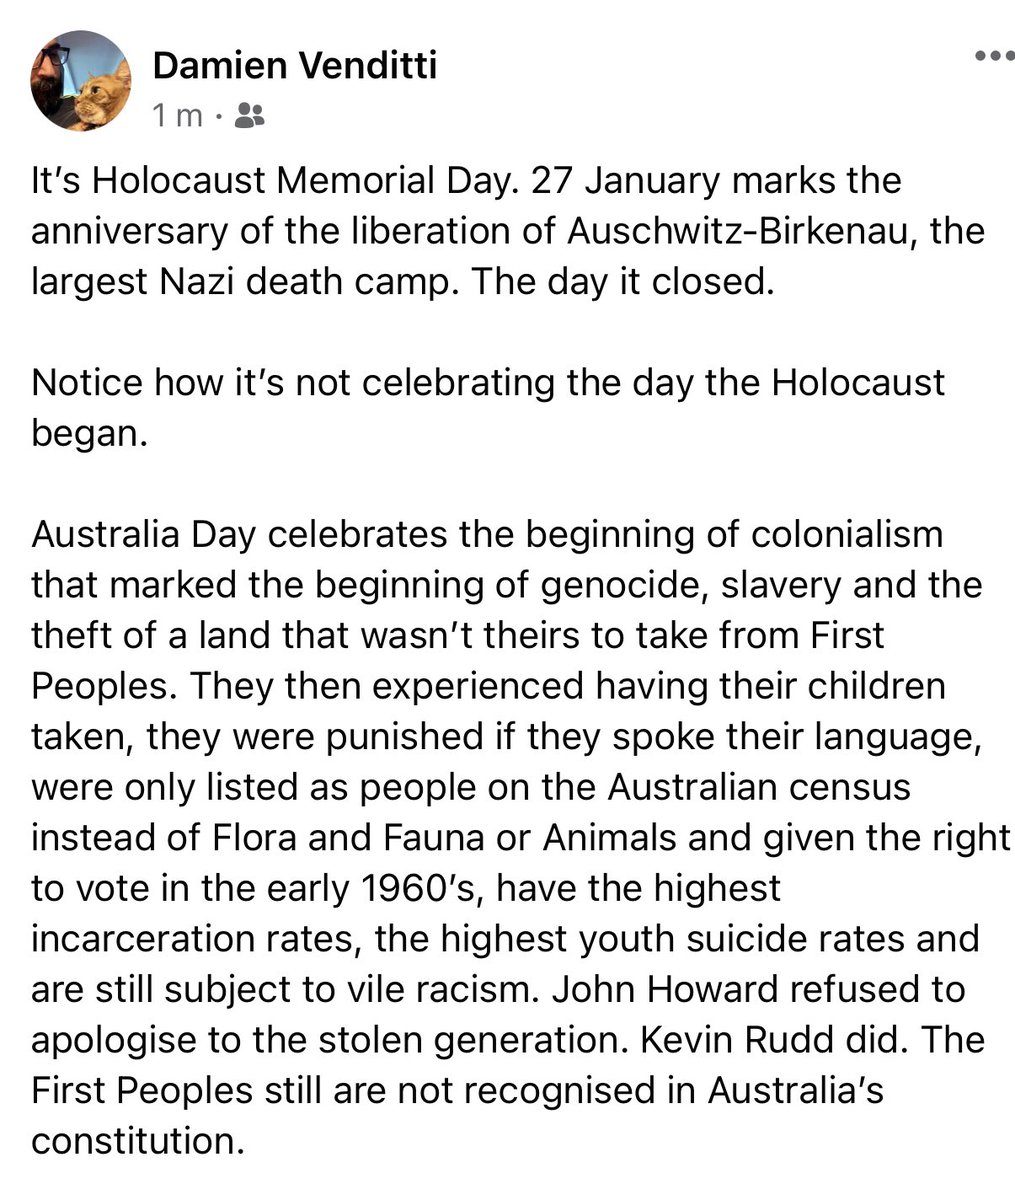 Australia has a lot to learn #AustraliaDay #AlwaysWasAlwaysWillBe #HolocaustMemorialDay #HolocaustRemembranceDay